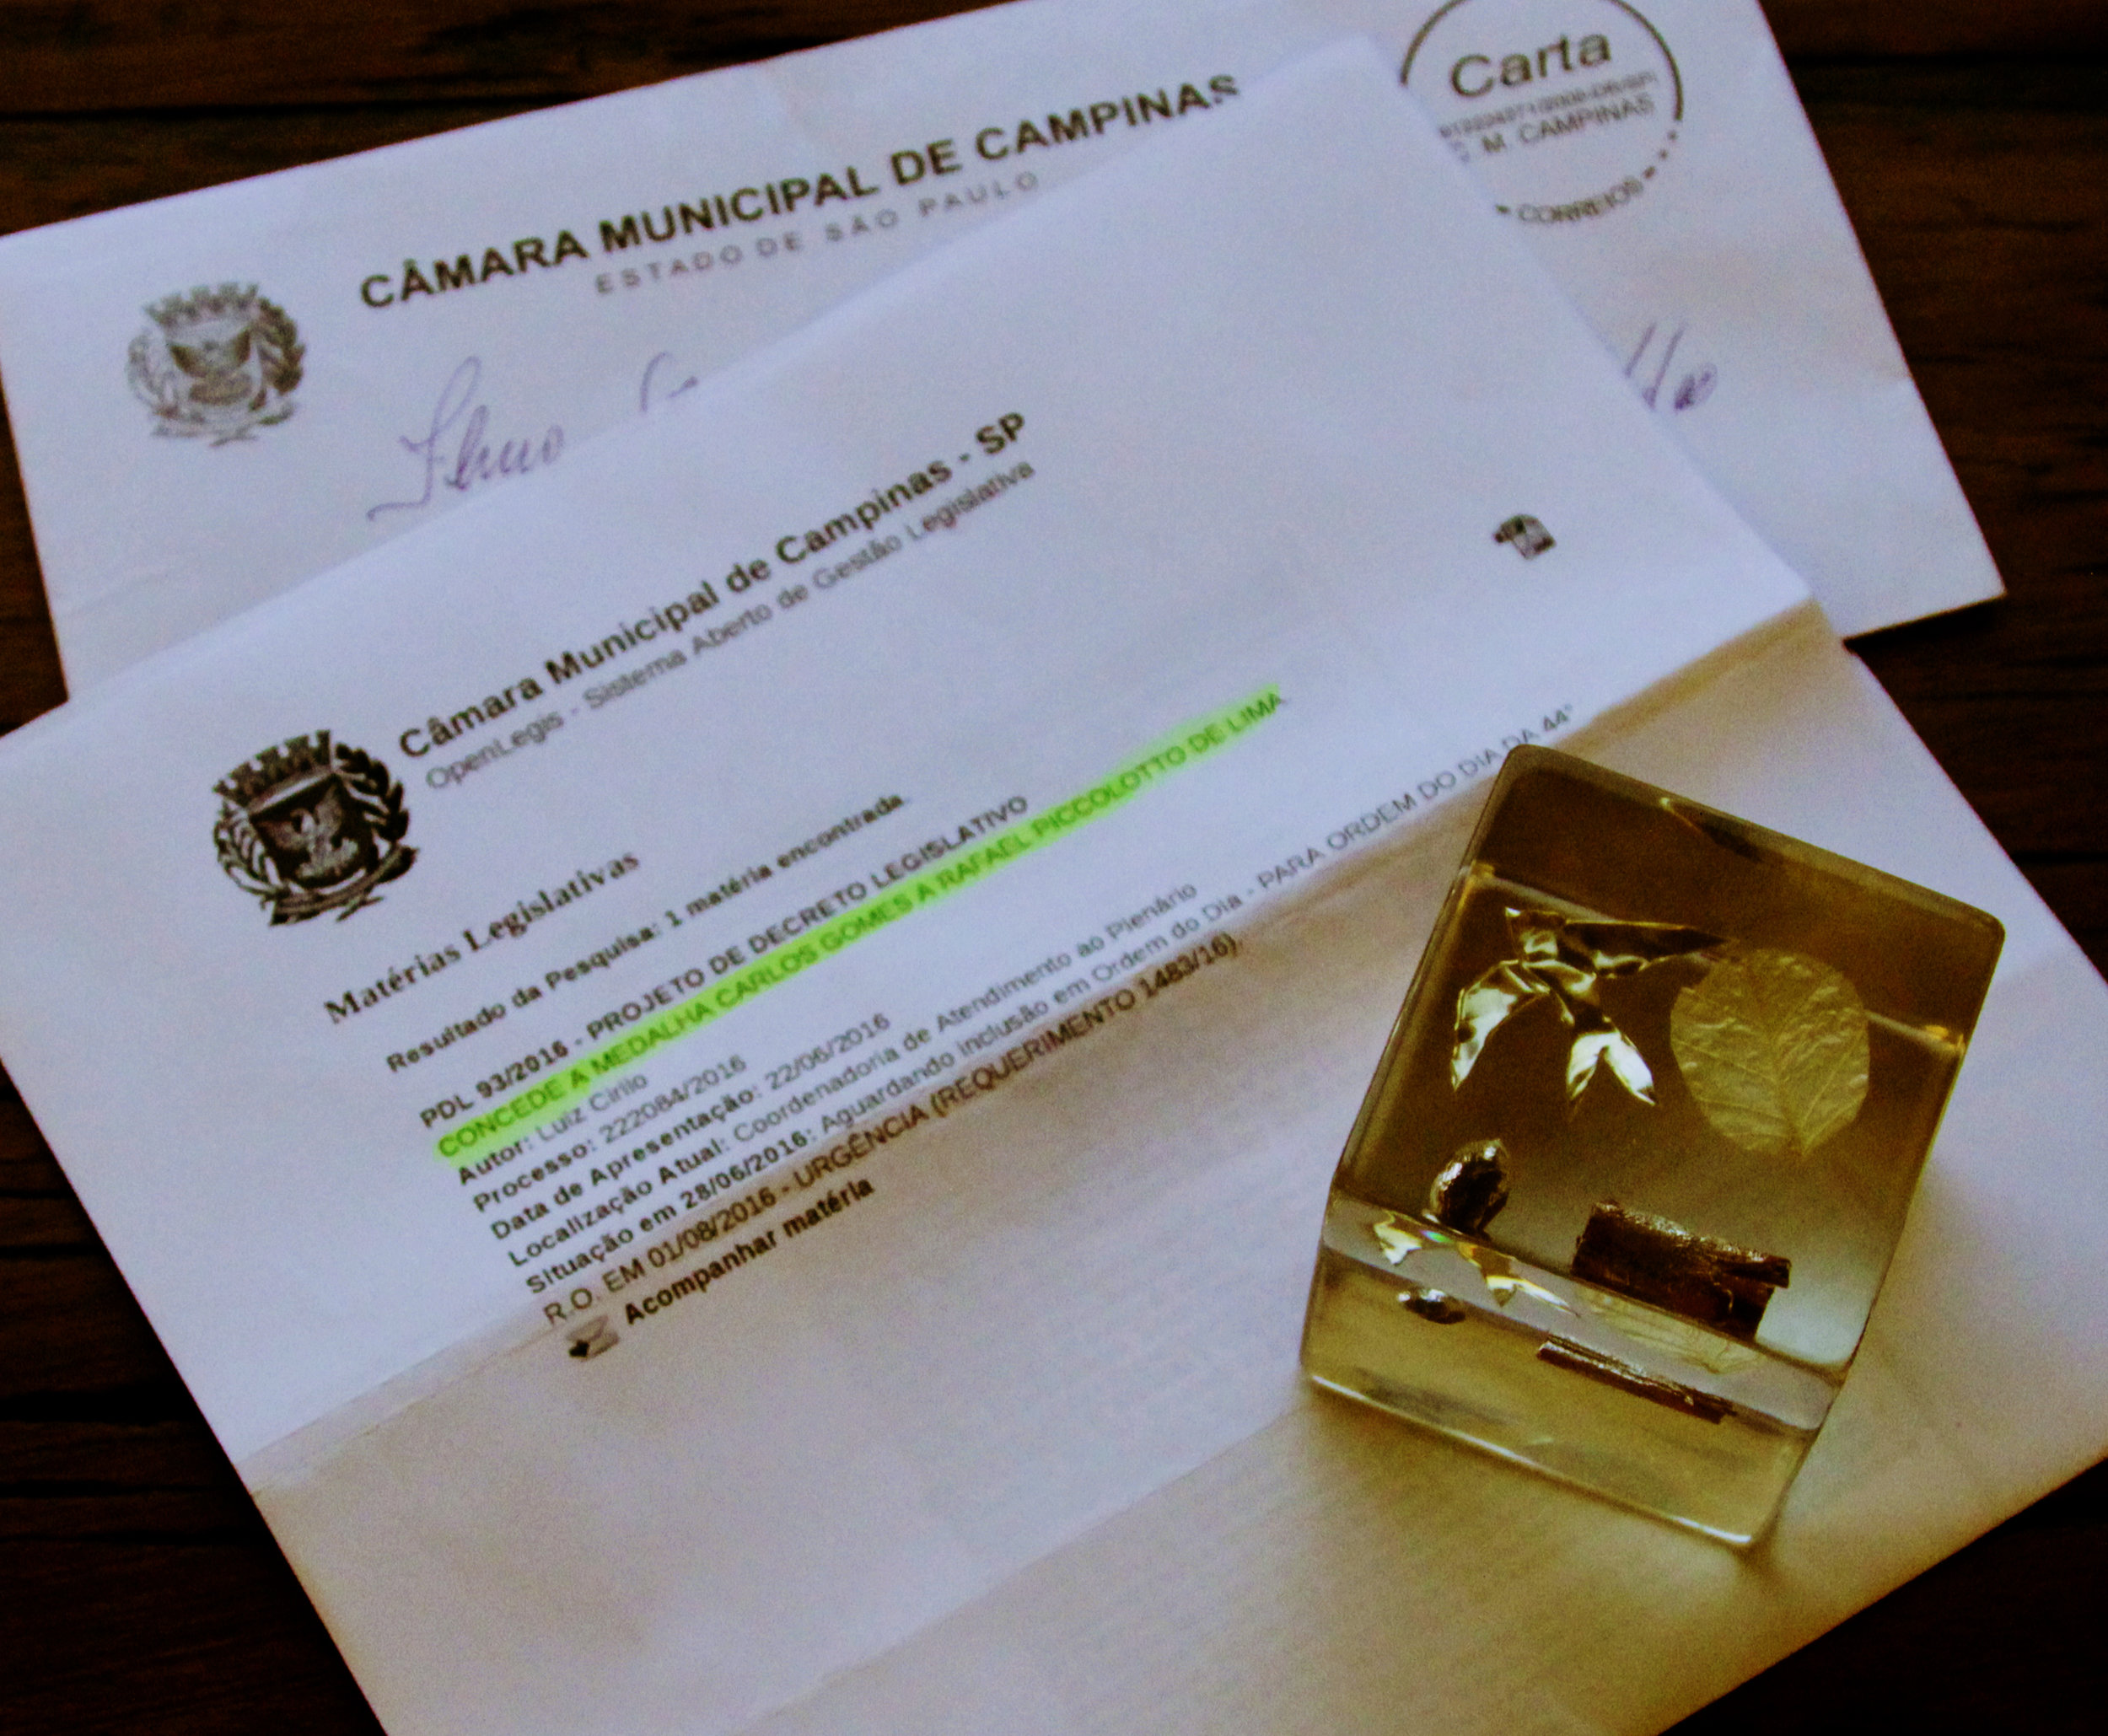 Carlos Gomes Medal invitation and and gift from the mayor. Campinas, São Paulo, Brazil.